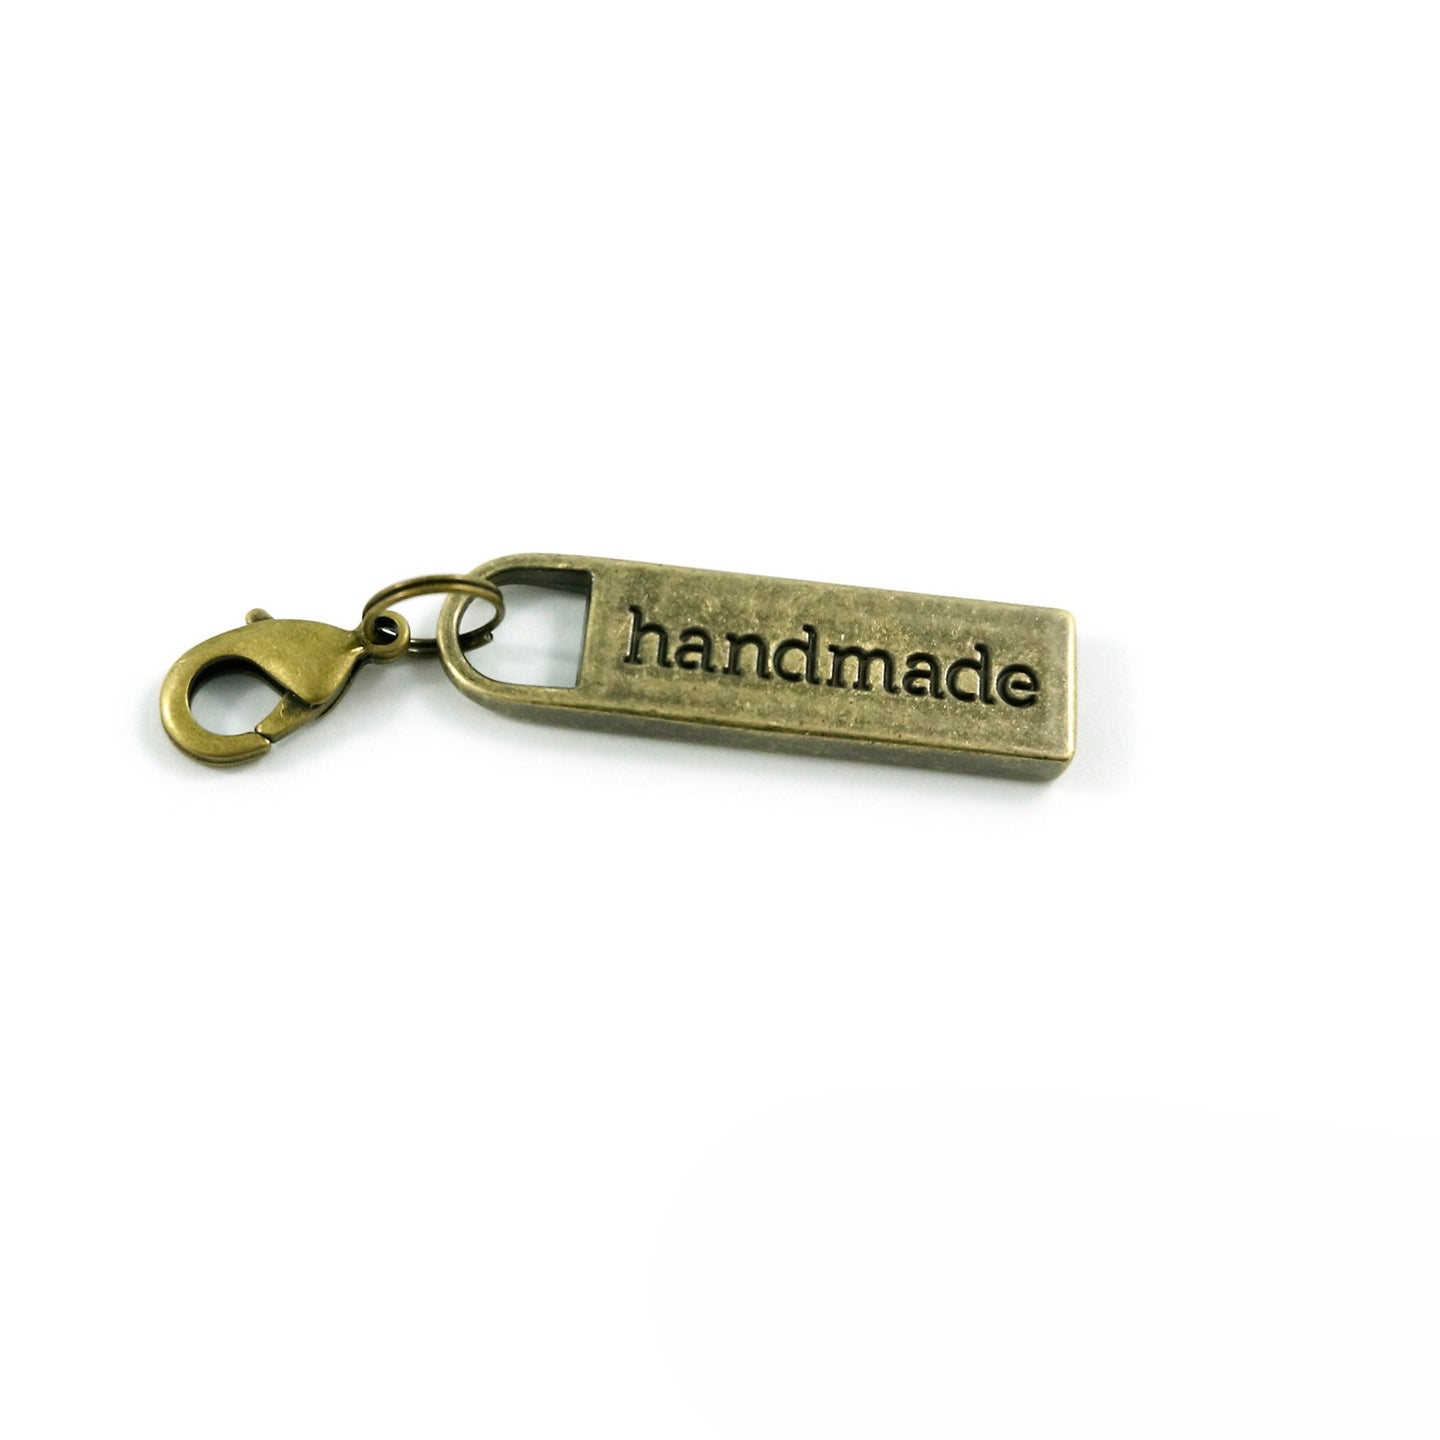 Zipper Pull - Handmade in Antique Brass